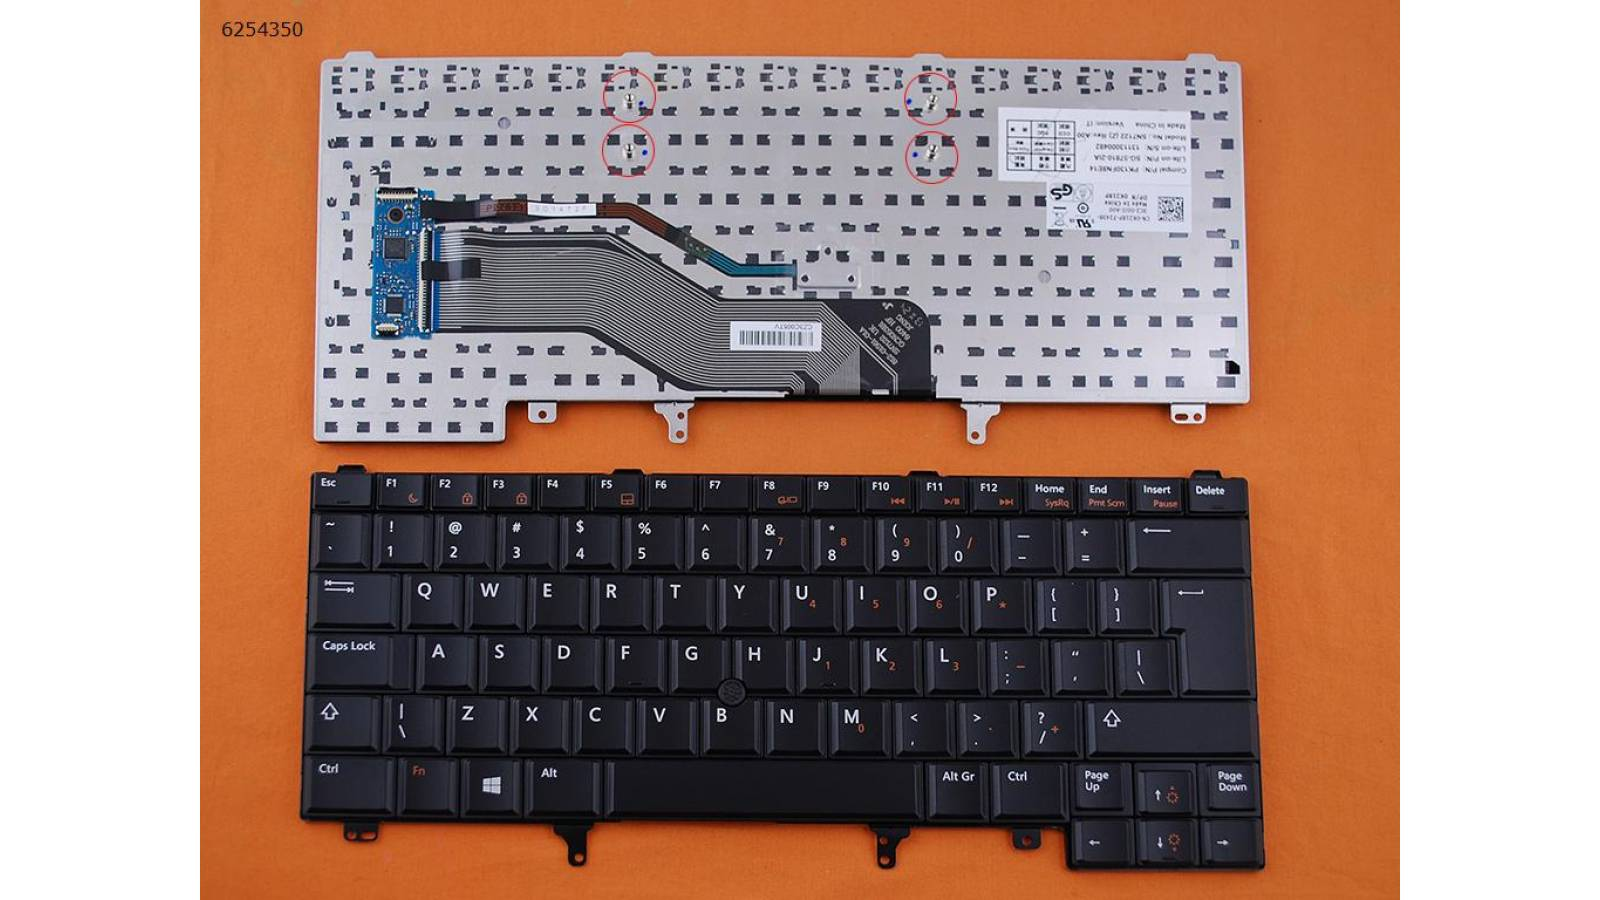 TECLADO NOTEBOOK DELL LATITUDE E6420 E5420 E6220 E6320 E6430 US